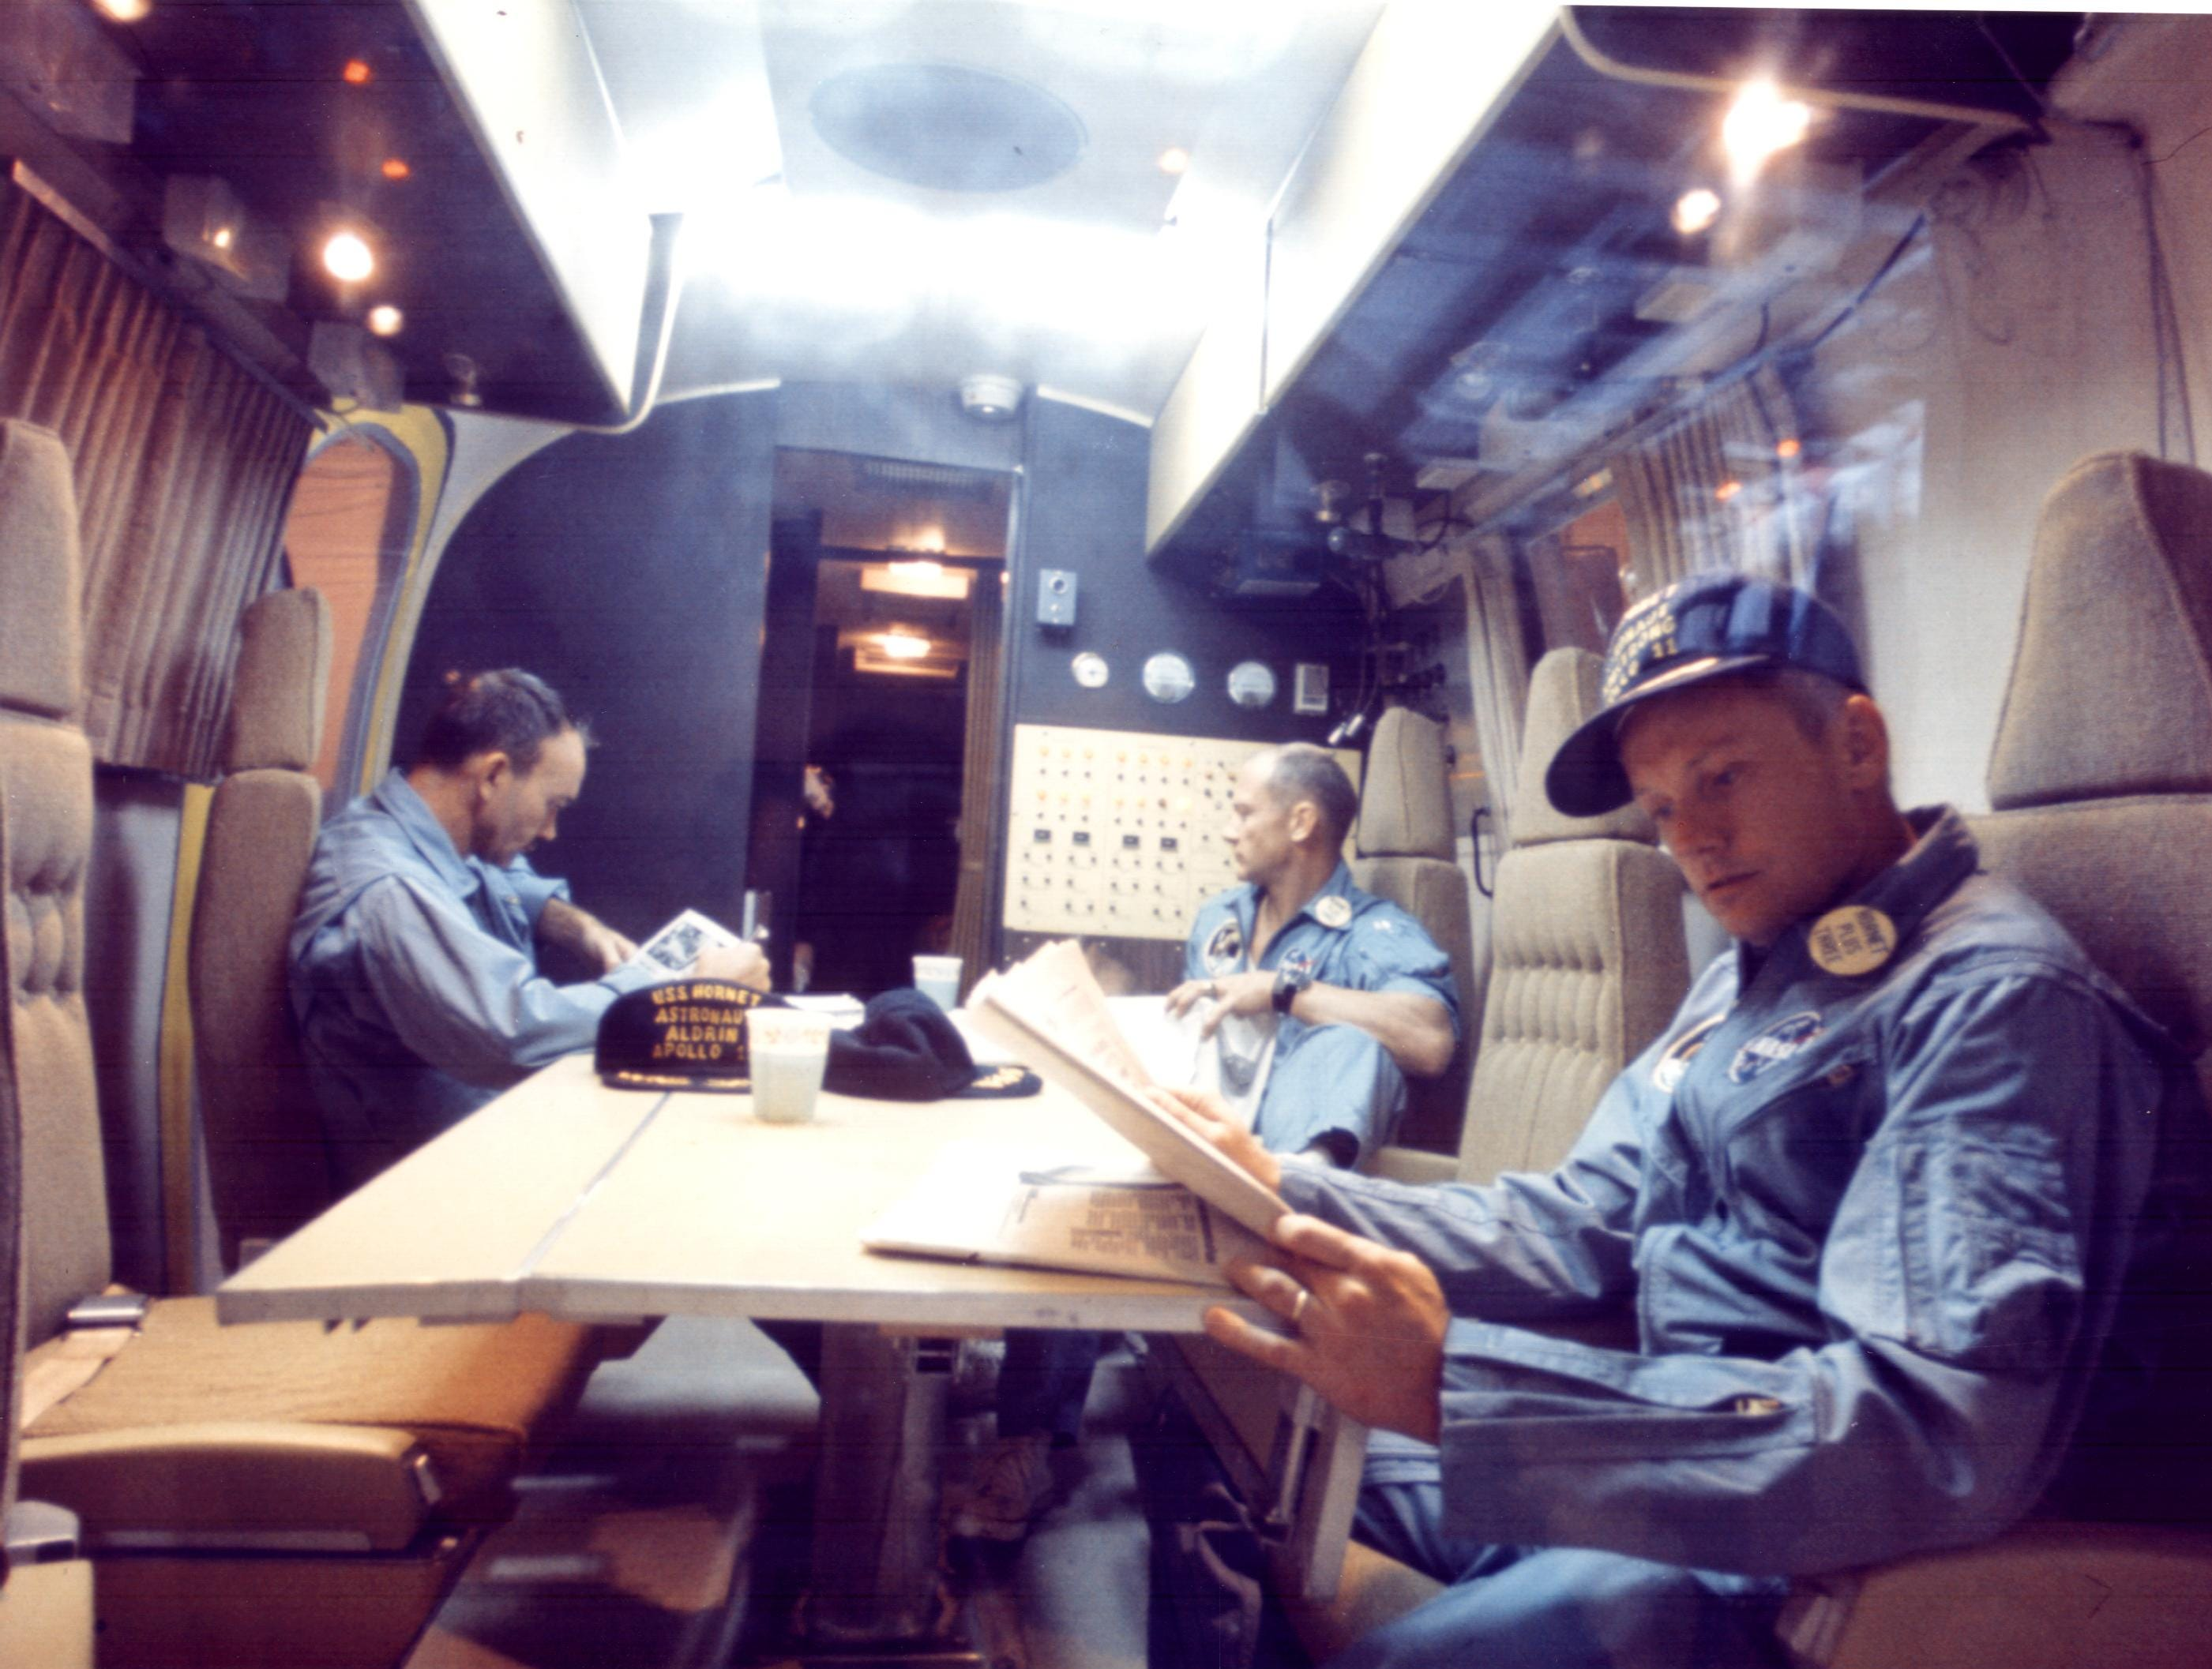 Within the Mobile Quarantine Facility, Apollo 11 astronauts (left to right) Michael Collins, Edwin E. Aldrin Jr. and Neil A. Armstrong relax following their successful lunar landing mission.